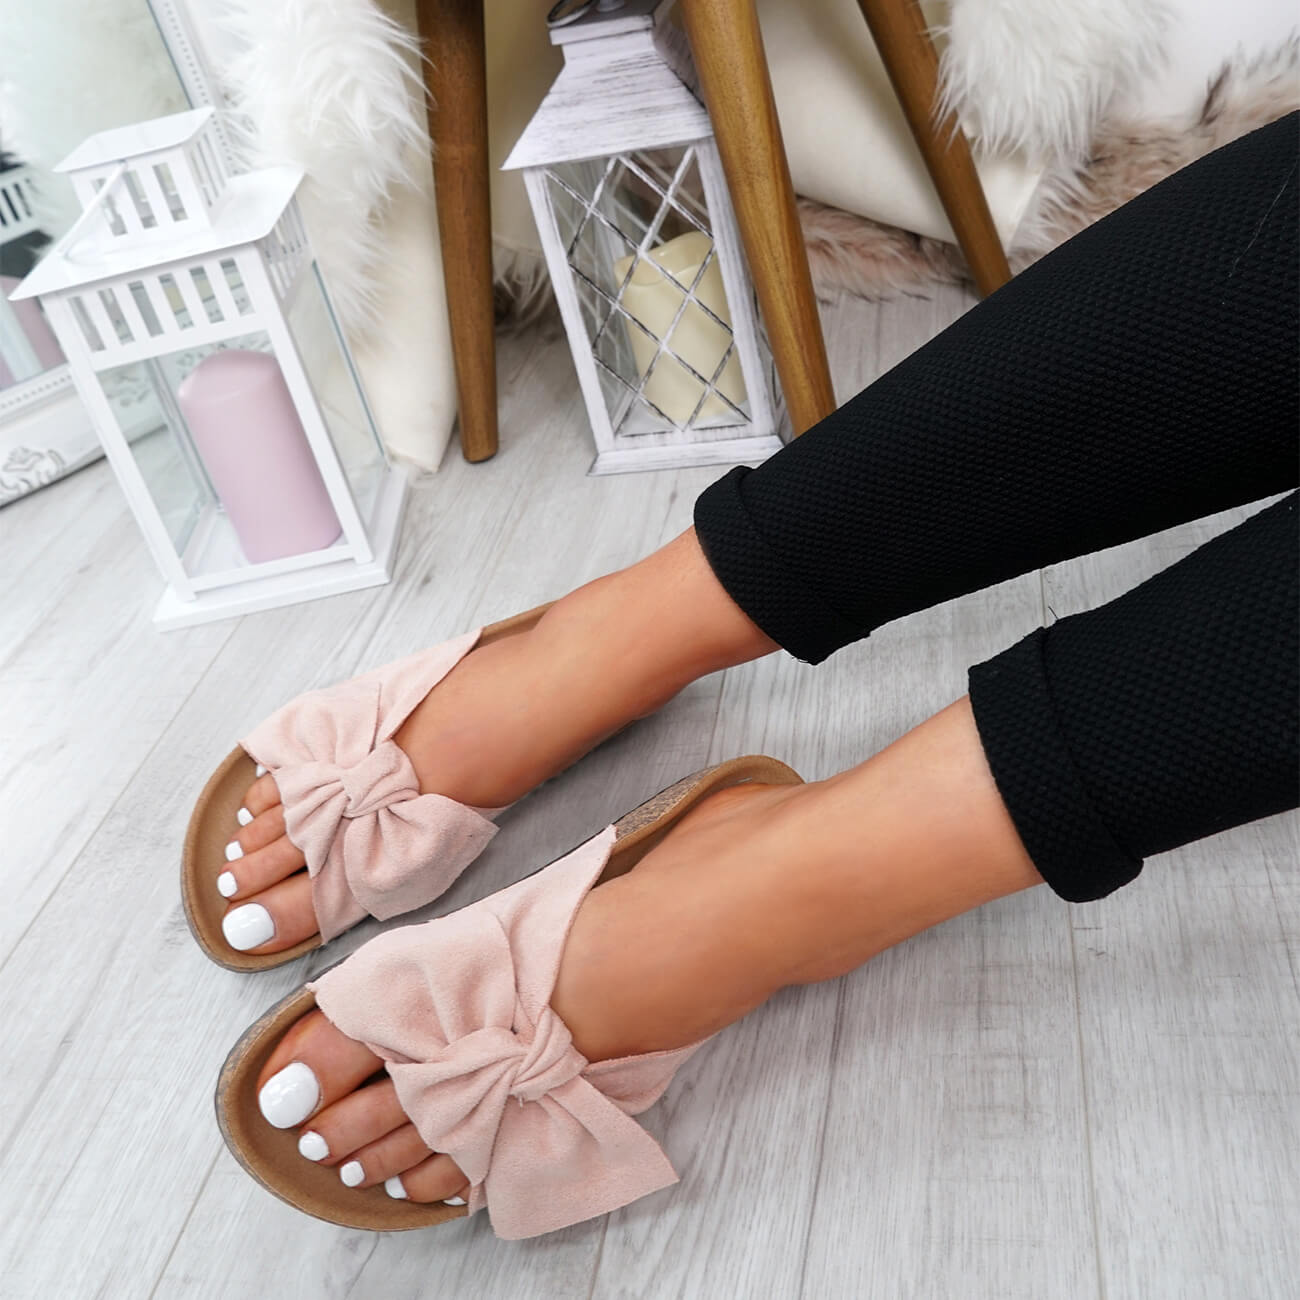 WOMENS-LADIES-SLIP-ON-FLAT-SANDALS-BOW-SLIDERS-SUMMER-CASUAL-SHOES-SIZE thumbnail 34